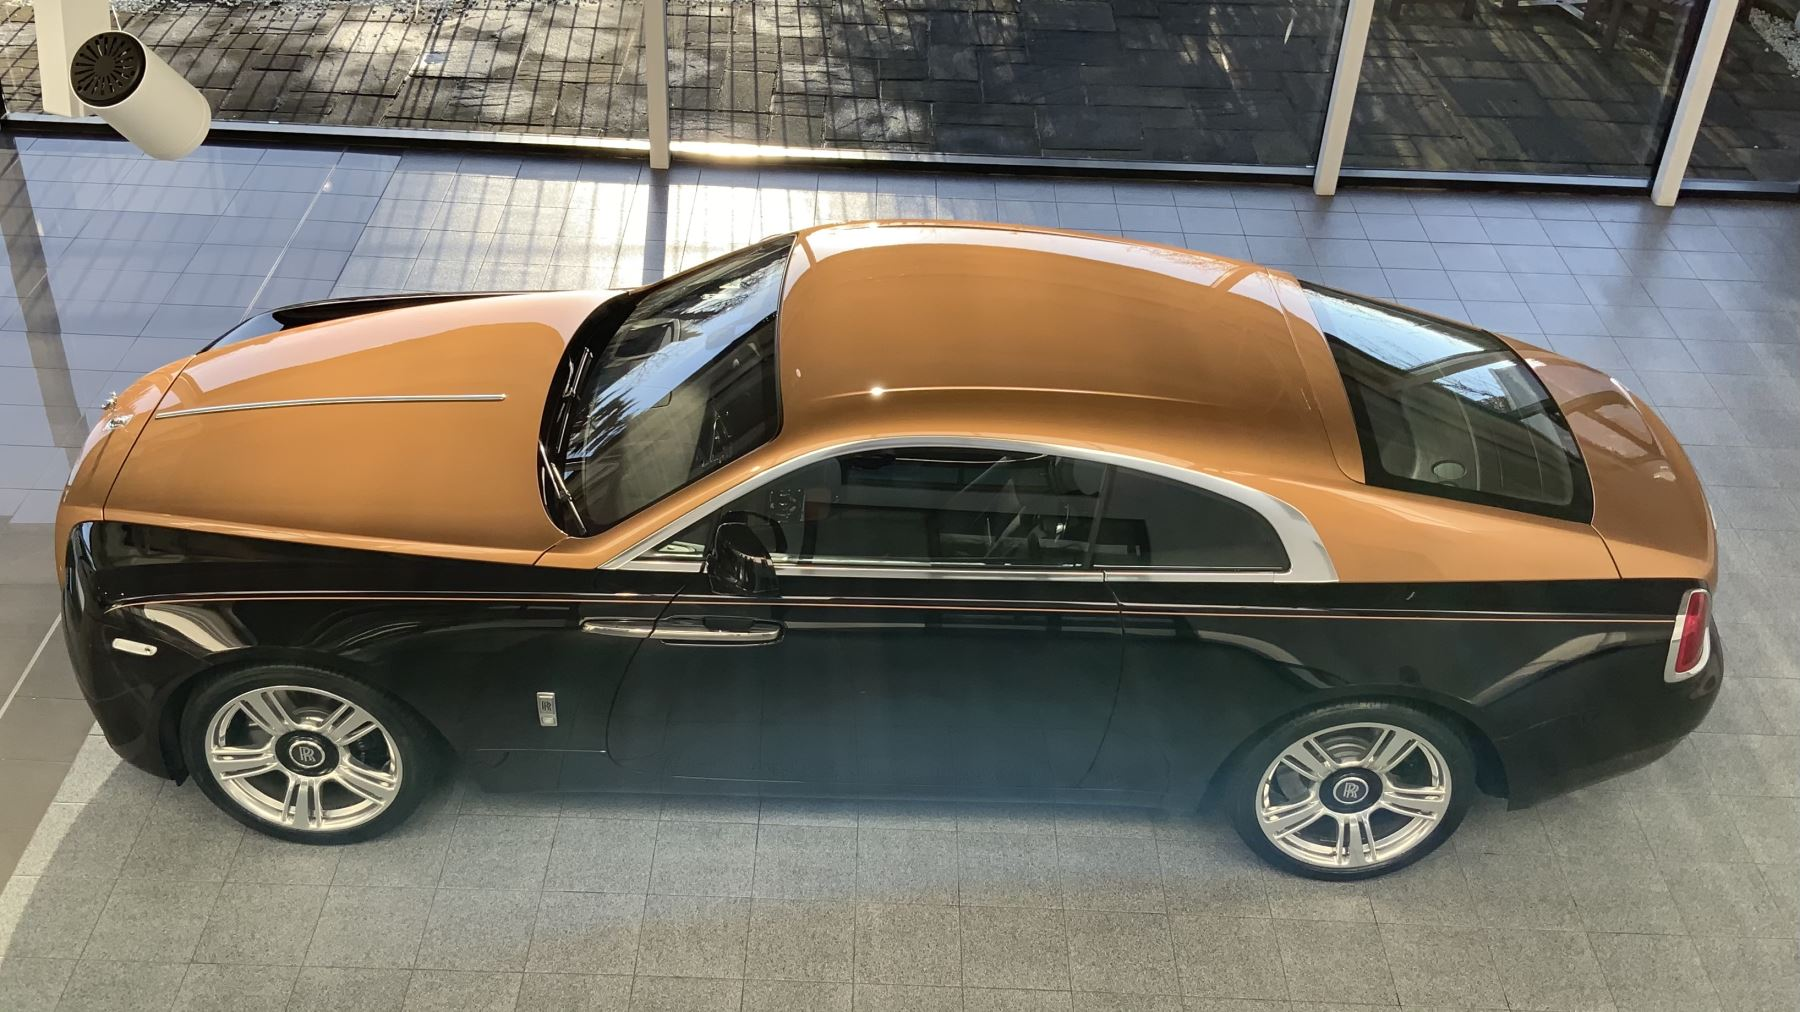 Rolls-Royce Wraith V12 6.6 Automatic 2 door Coupe (2016) image